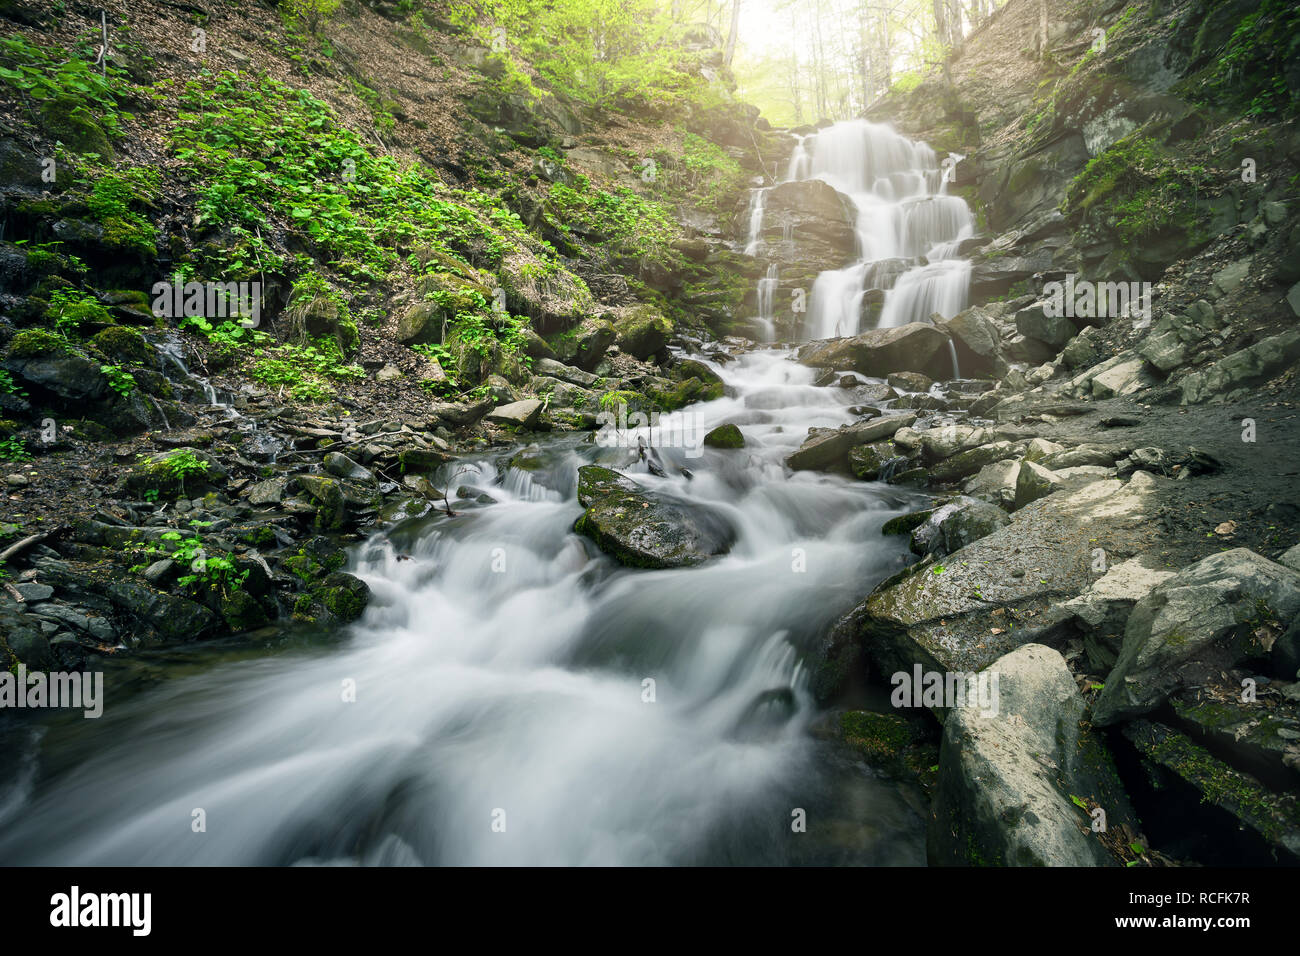 Waterfall in the forest among black stones - Stock Image